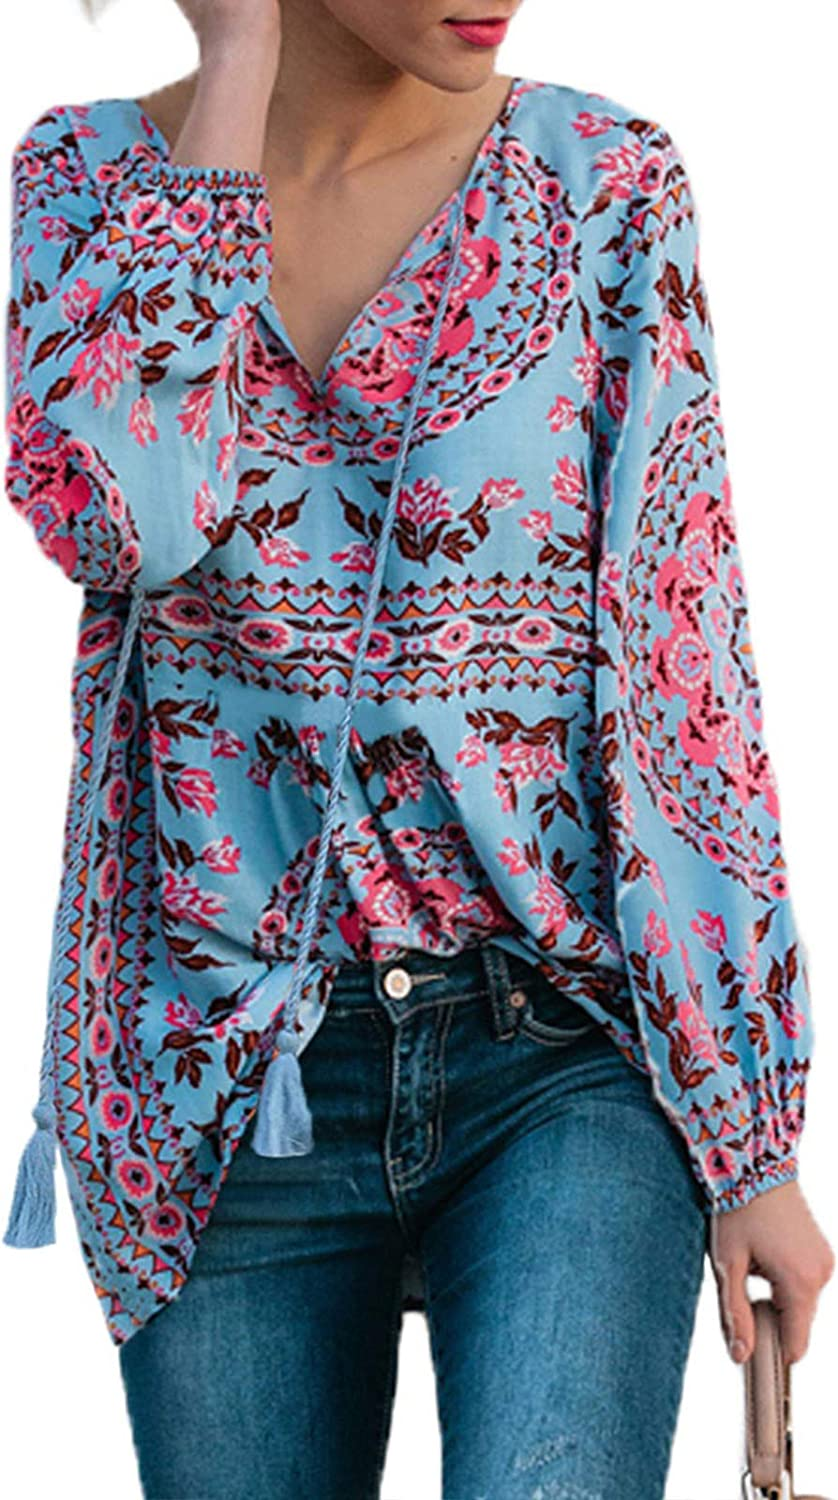 Hadeflia Plus Size Womens V Neck T Shirt Ladies Casual Longsleeve Cotton Tops Button Down Shirts Loose Blouses with Pocket